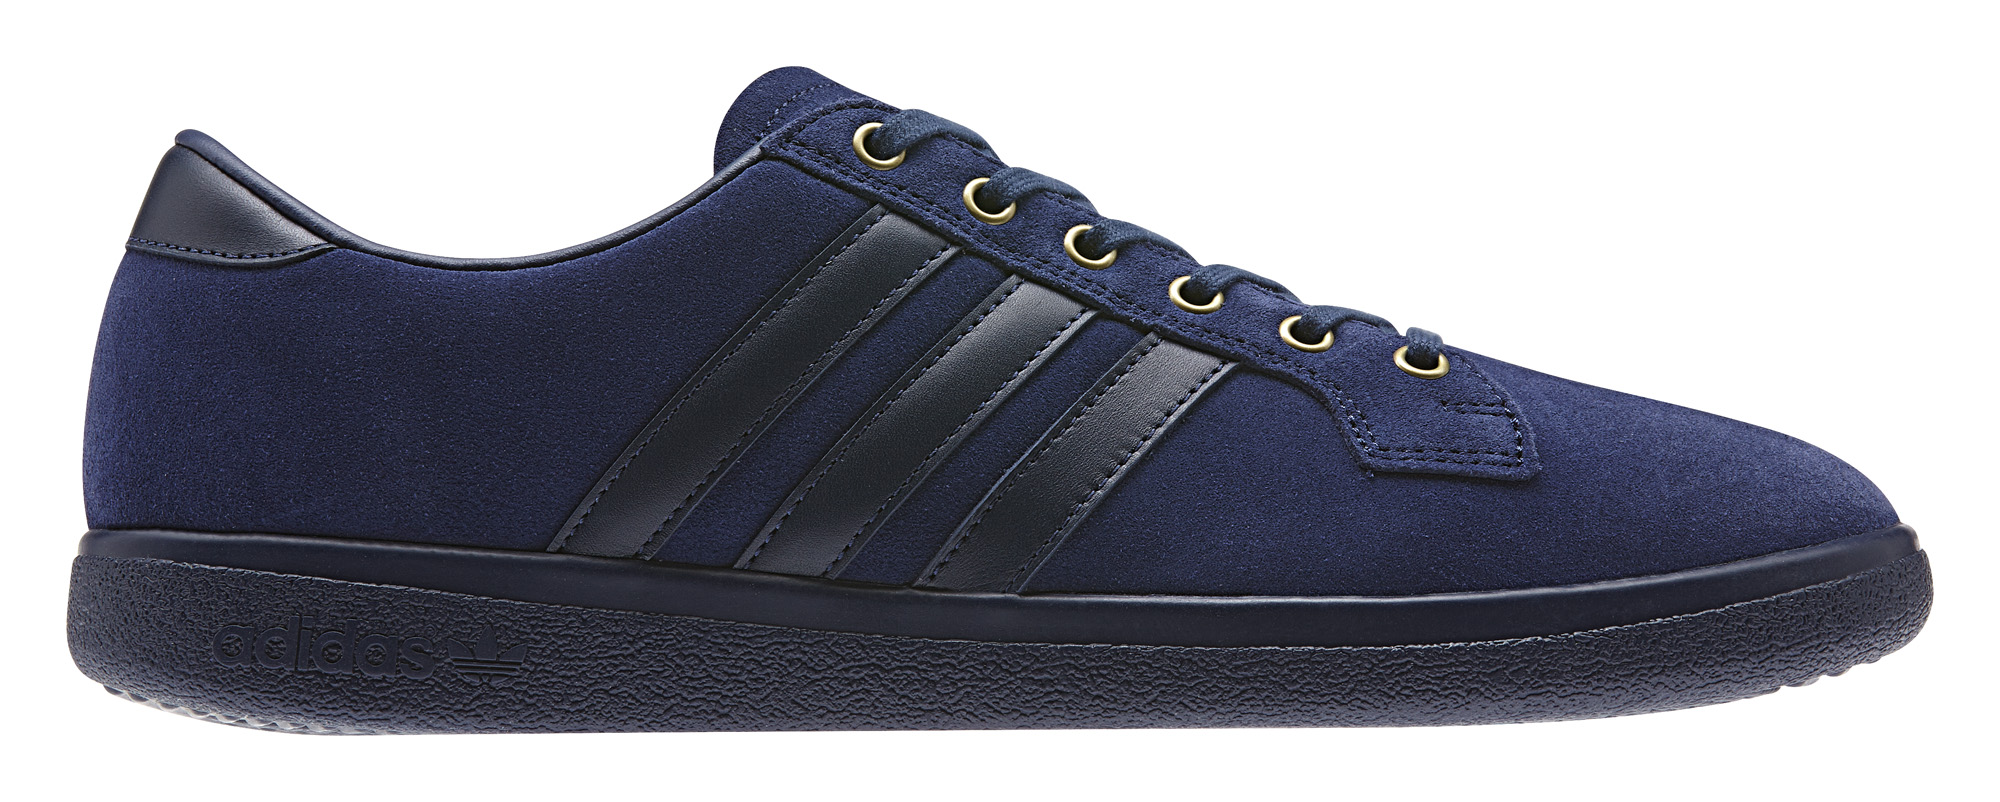 adidas-spezial-collection-fall-winter-2016-10